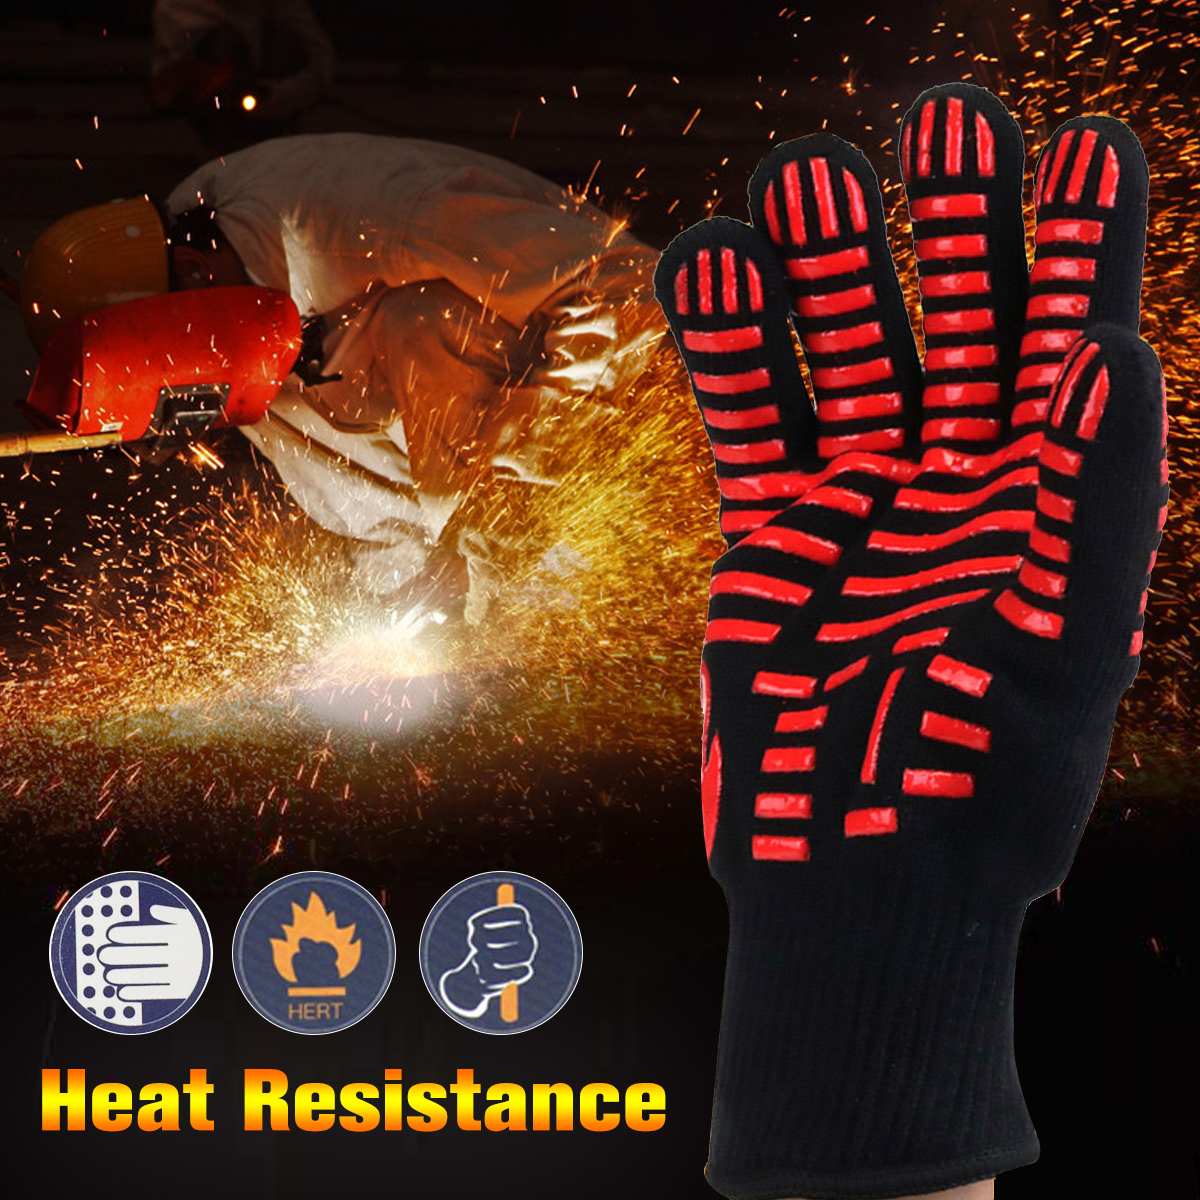 1/2 pcs Extreme Insulation Safety Fire Gloves Heat Resistant Aramid Glove Oven Kitchen Glove Direct Supply Forearm Protection 1 pair free shipping aramid fire insulation gloves heat resistant glove 932f bbq glove oven kitchen glove direct supply